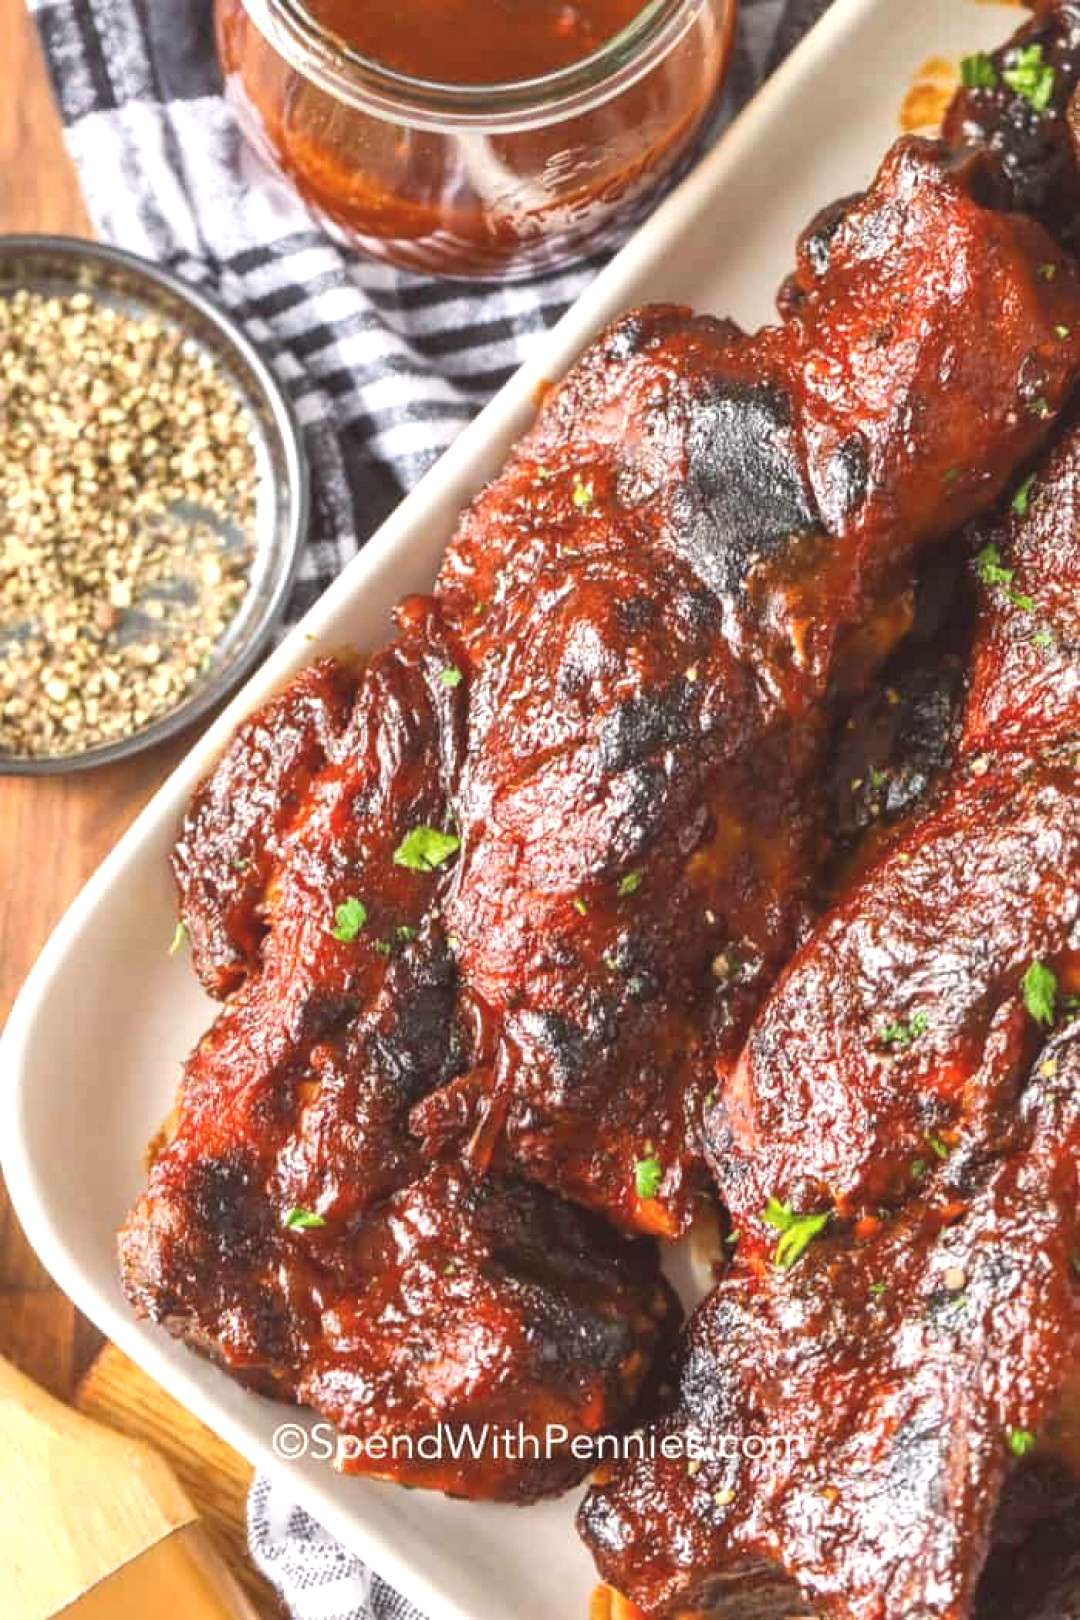 BBQ Country Style Ribs Oven Baked - Spend With Pennies - Country Style Ribs are an easy oven bak